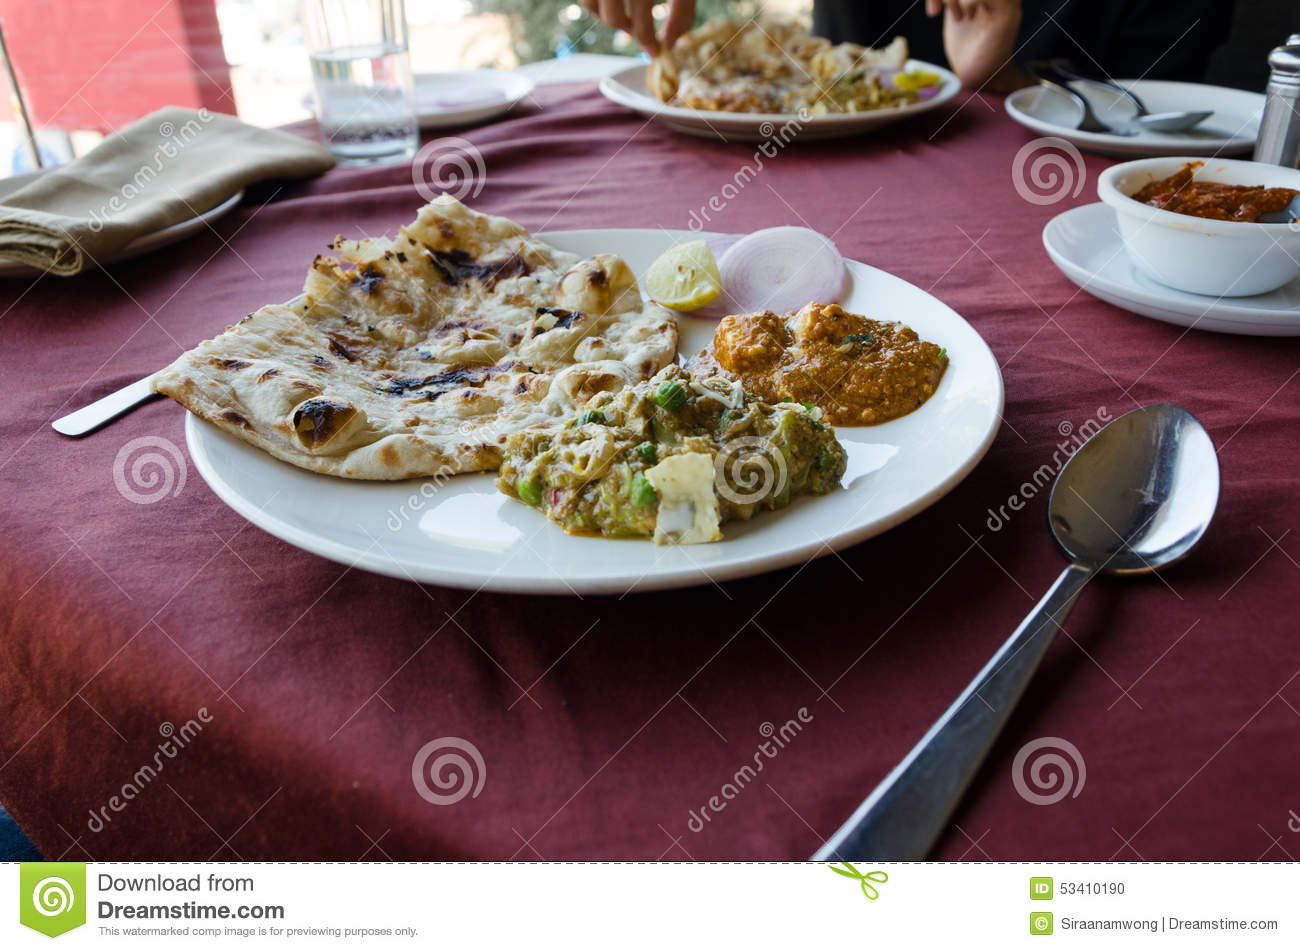 Indian cuisine stock photo image 53410190 for Artisan cuisine of india